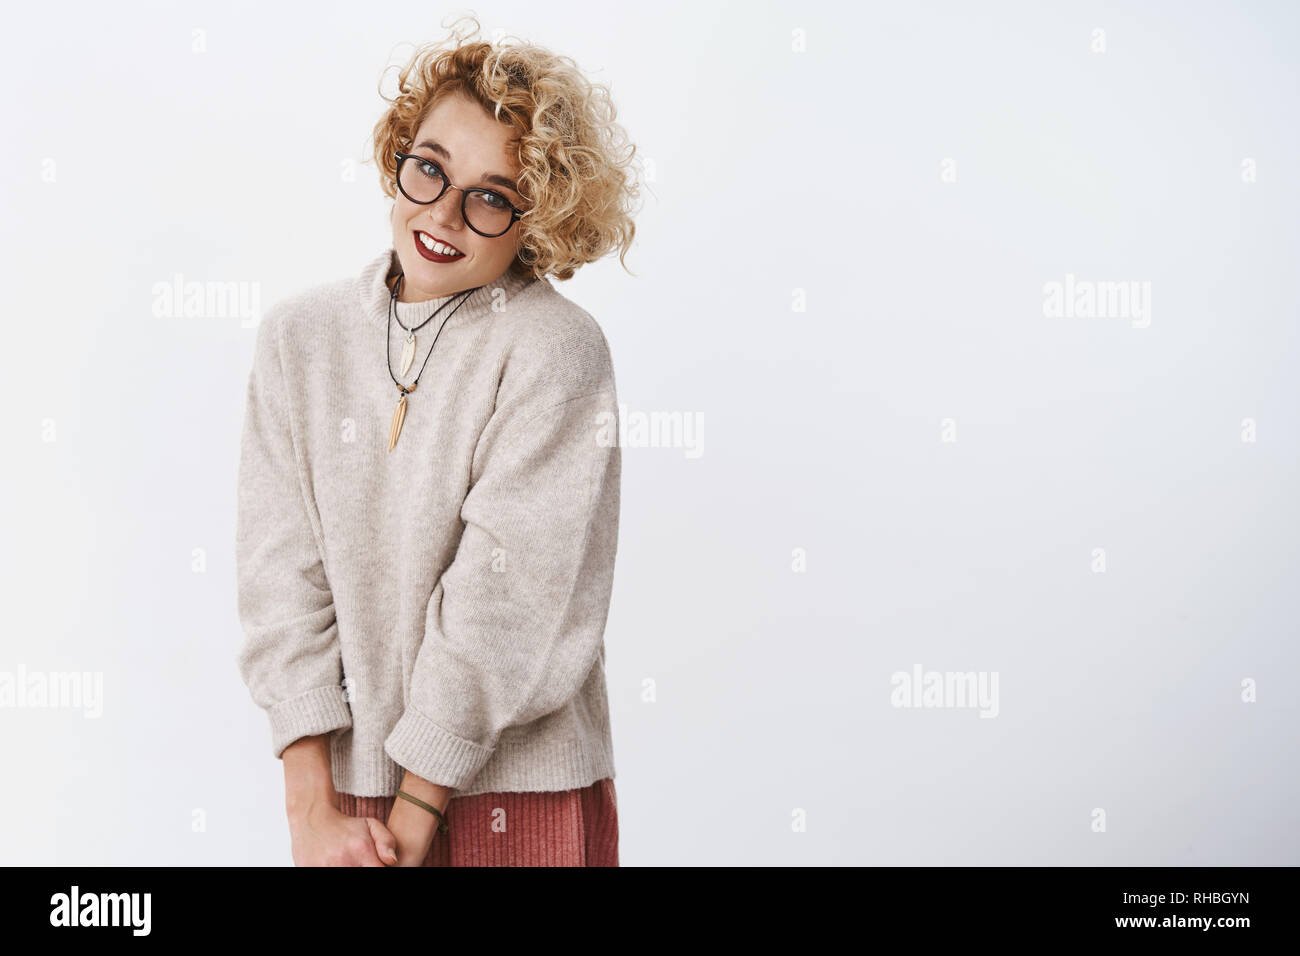 Portarit of cute and shy flirty blond girl in glasses and sweater making lovely gazes at camera smiling sensually and feminine as posing over white - Stock Image